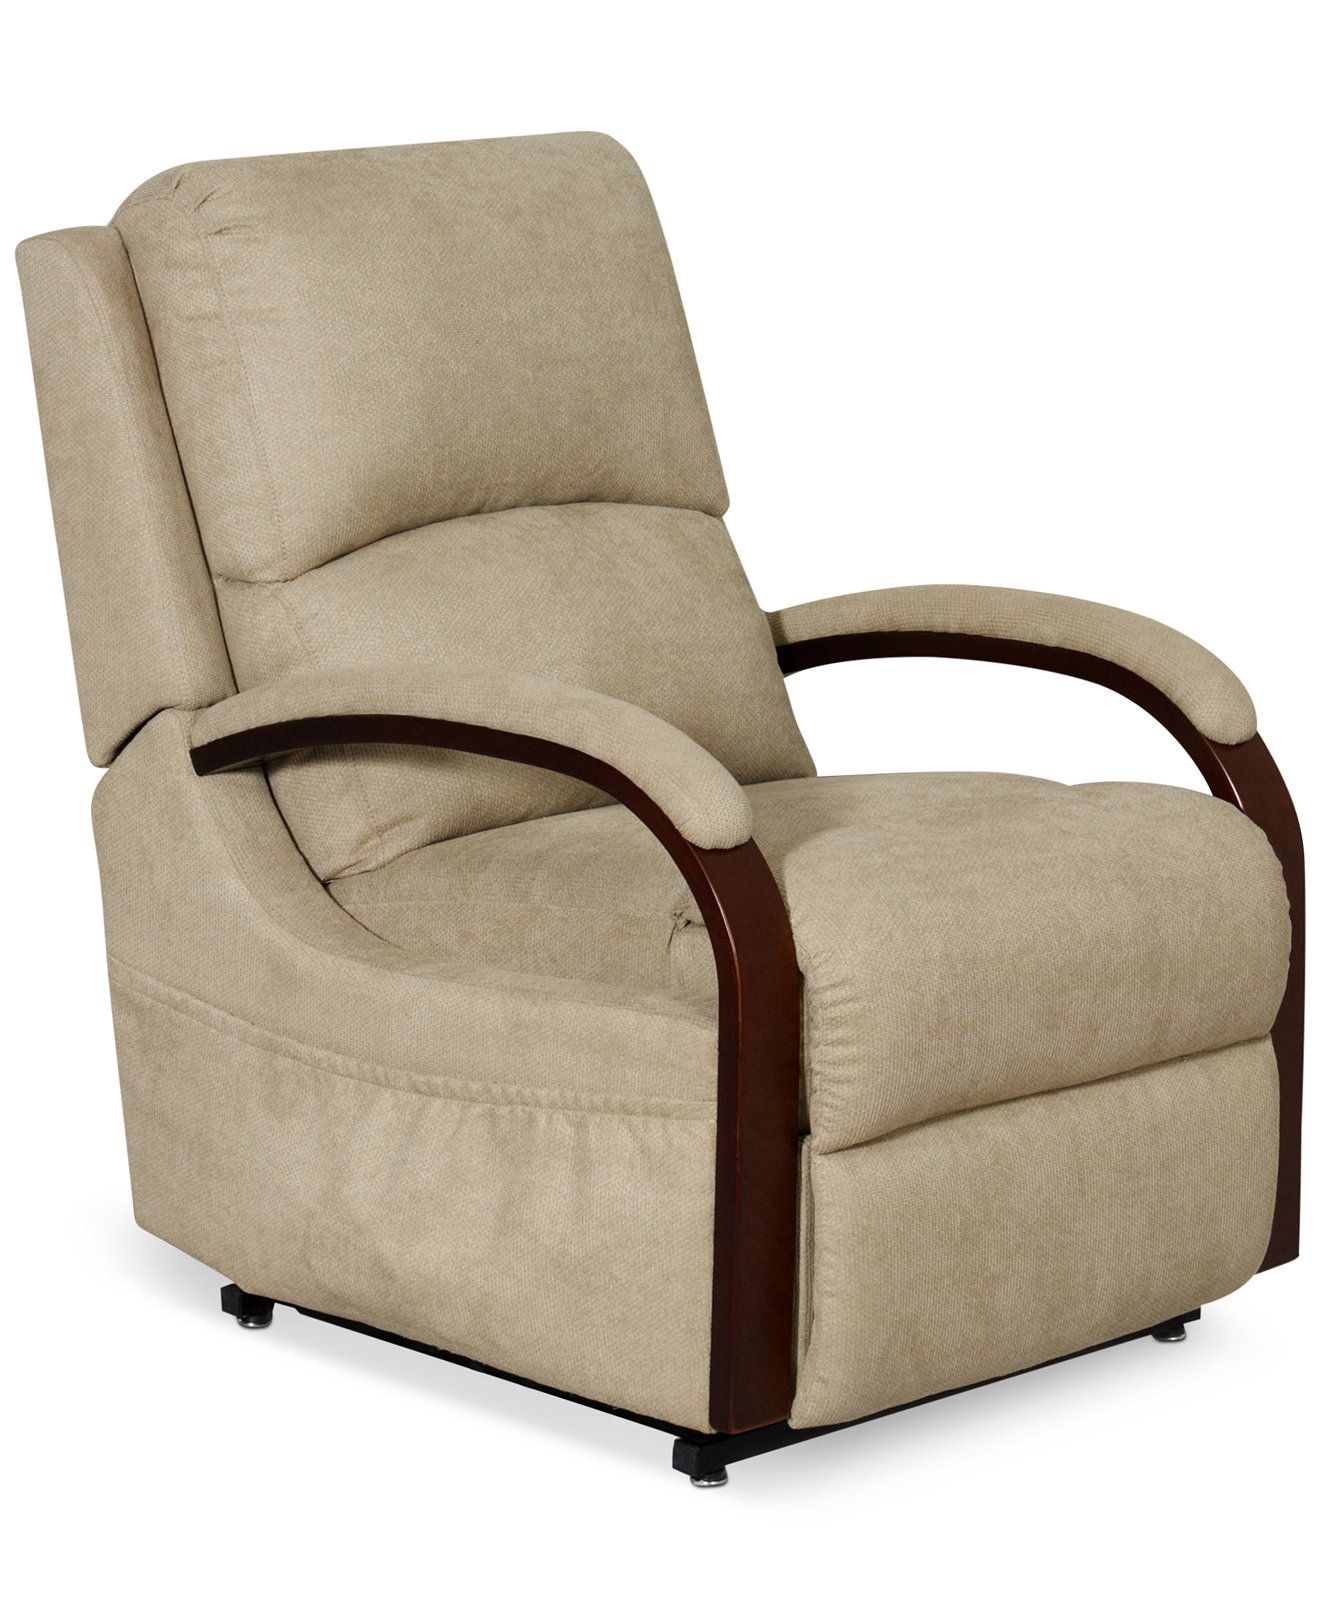 Percey Fabric Power Lift Recliner Chair Recliners Furniture